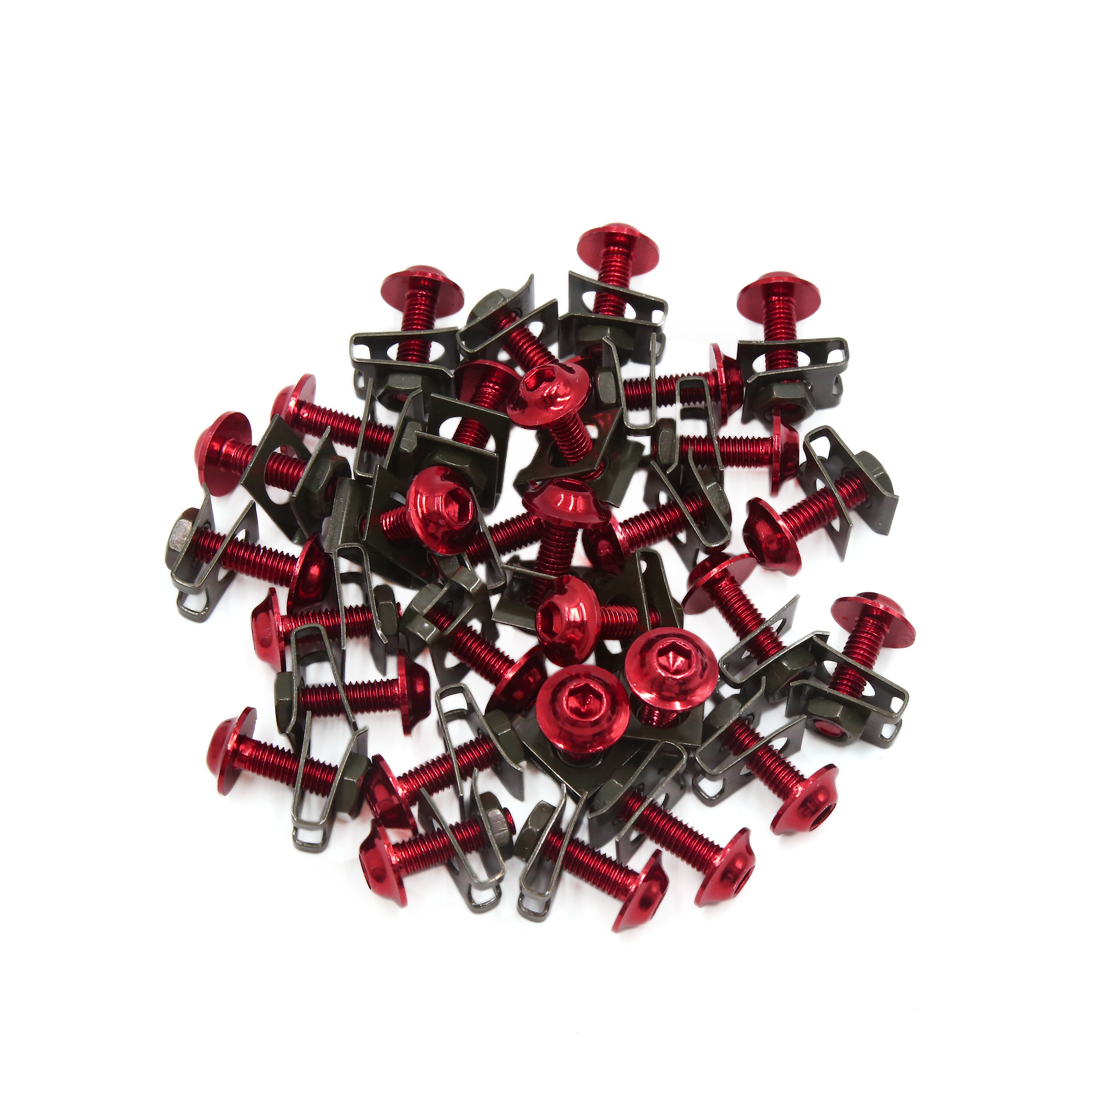 30 Pcs Red Black Motorcycle Hexagon Bolts Hex Trad Screws w Metal Holder